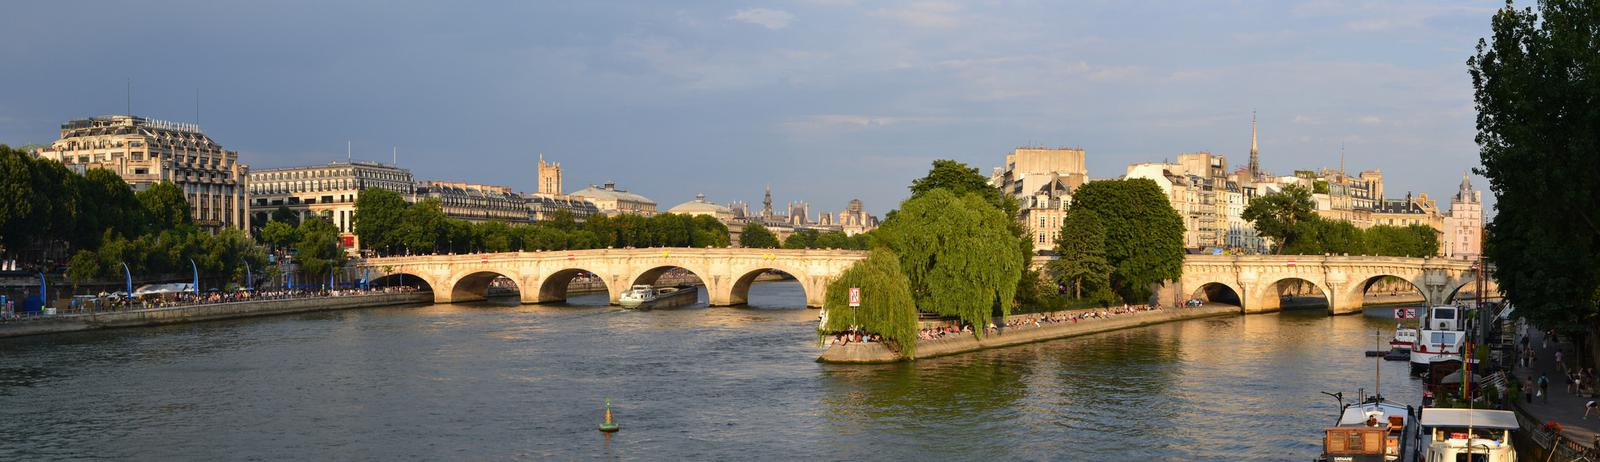 panoramica pont neuf paris